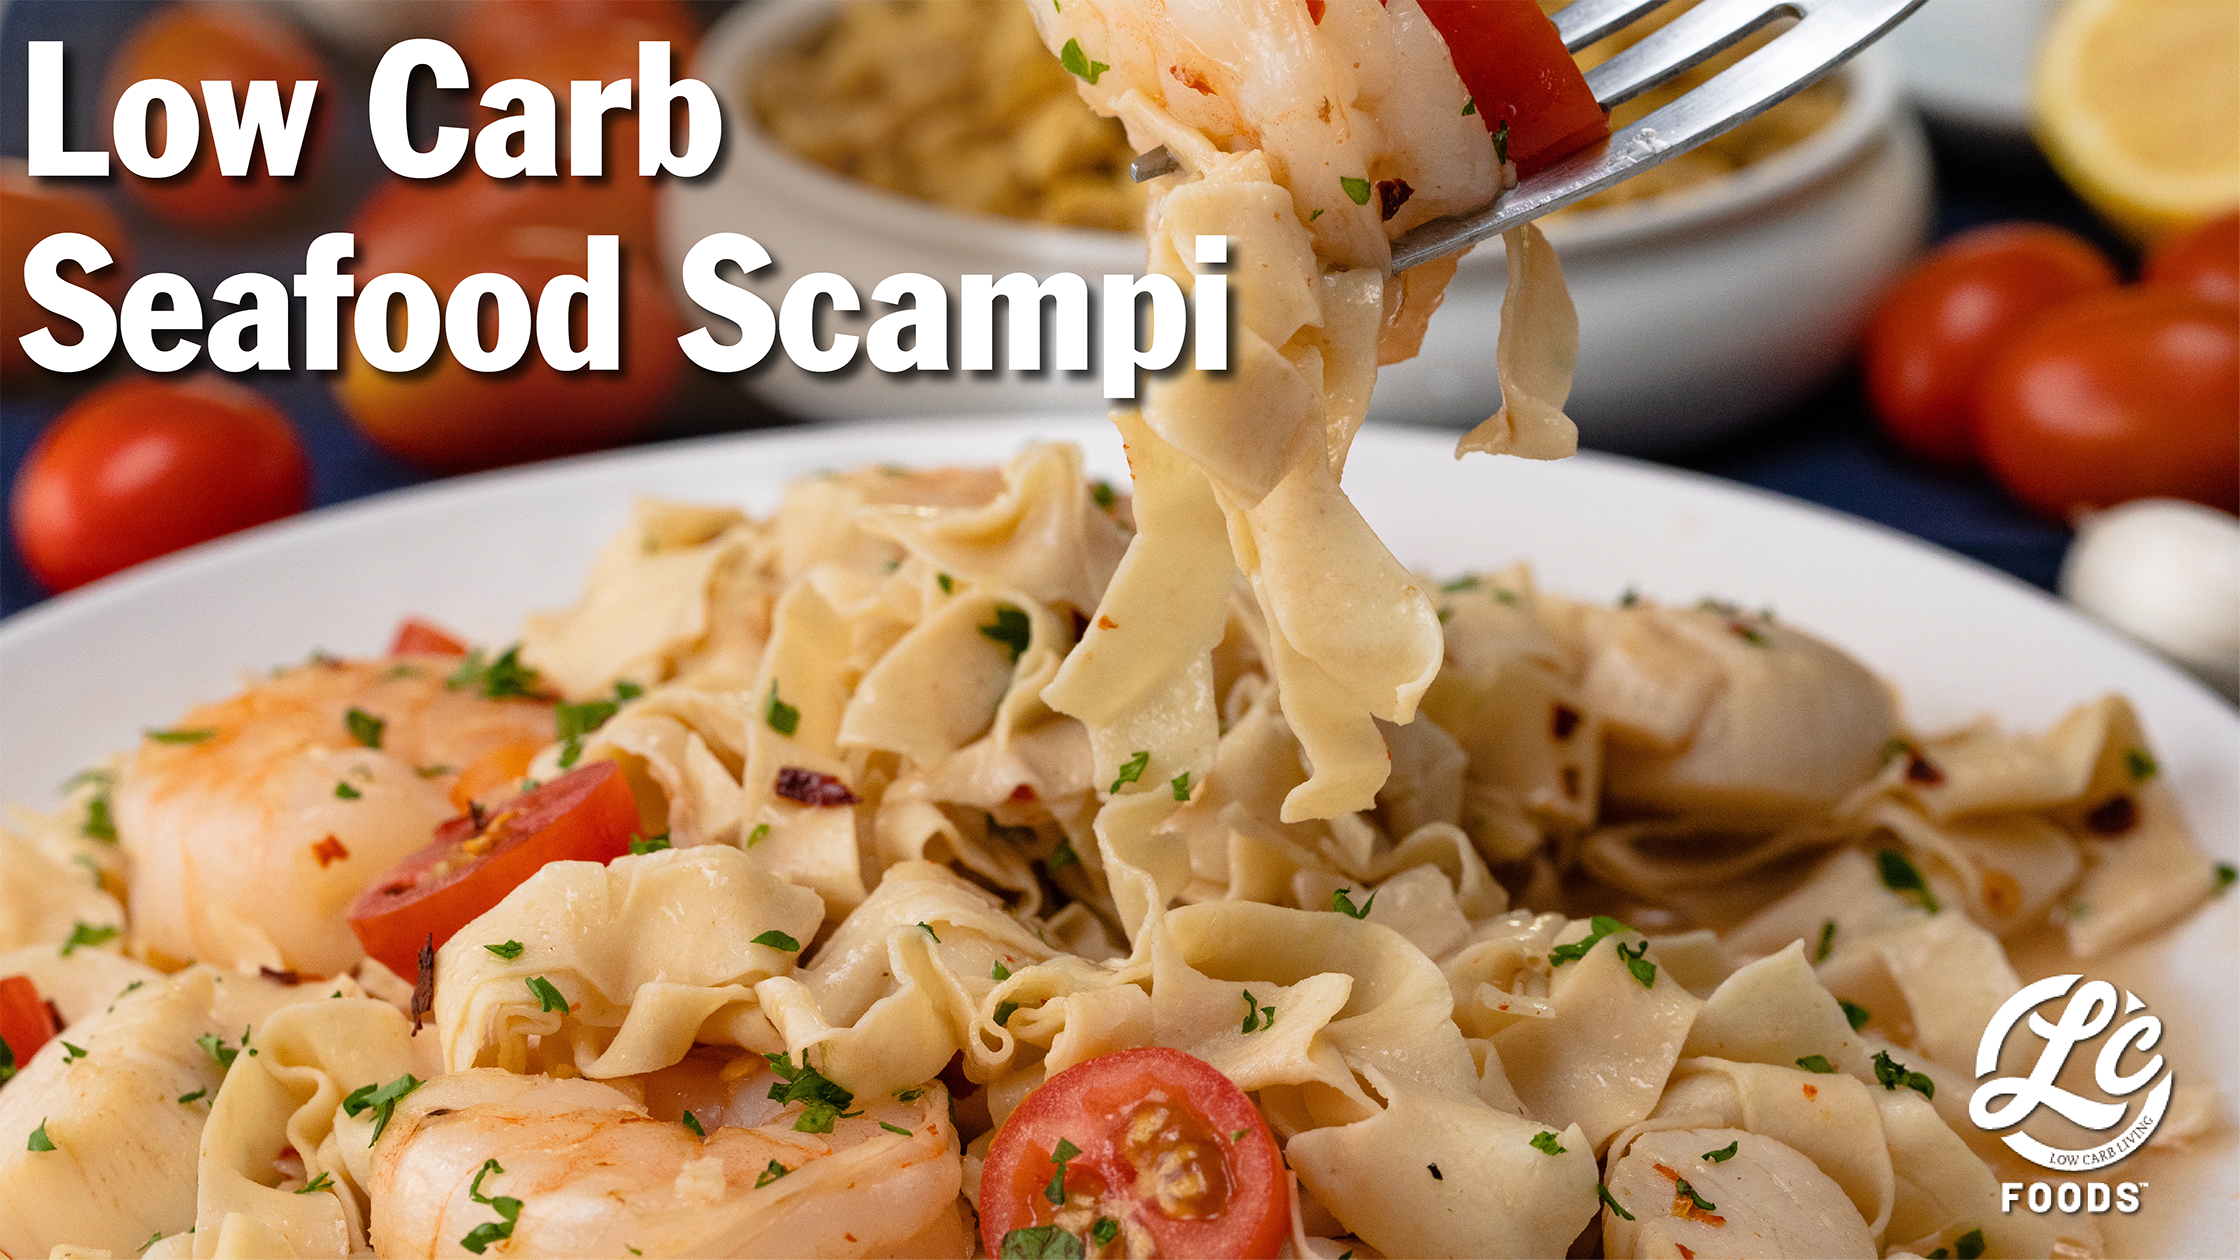 Thumbnail for Seafood Scampi with Low Carb Egg Noodles Pasta